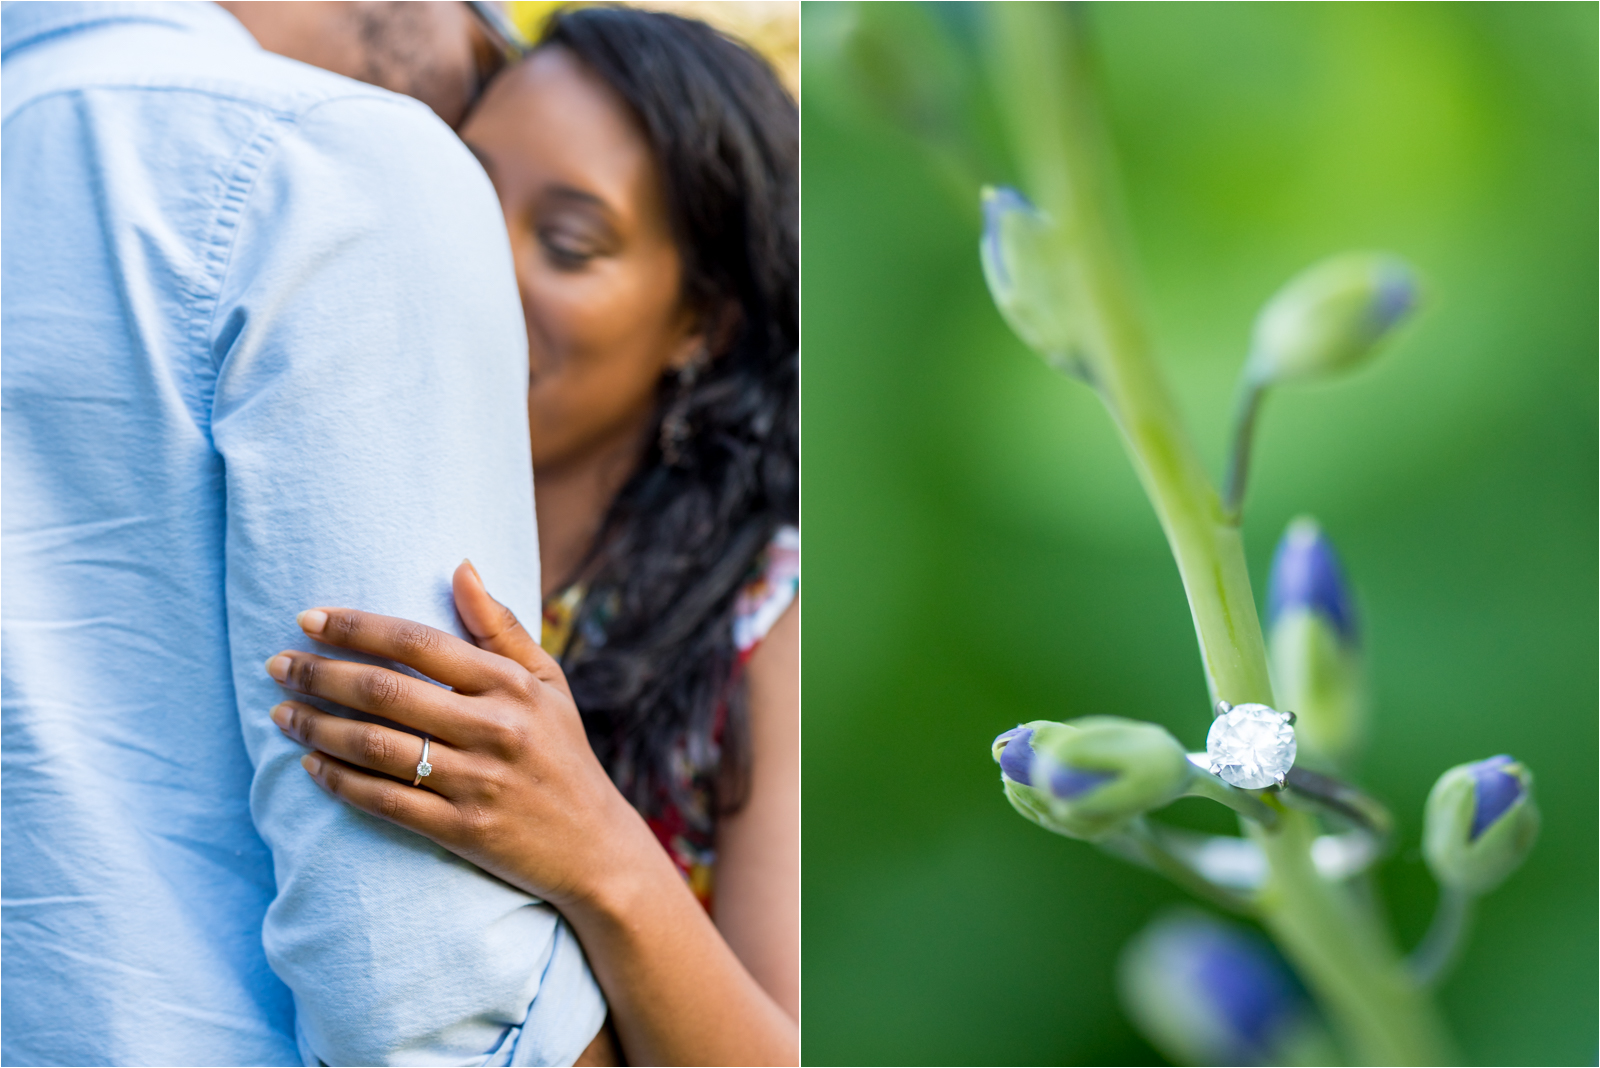 japanese-gardens-japanesegardens-ring-engagement-images-maymont-park-italian-japanese-gardens-richmond-virginia-rva-va-focus-on-joy-photography-african-american-couple-white-dress-colorful-flowers-blue-polo-shirt-richmond